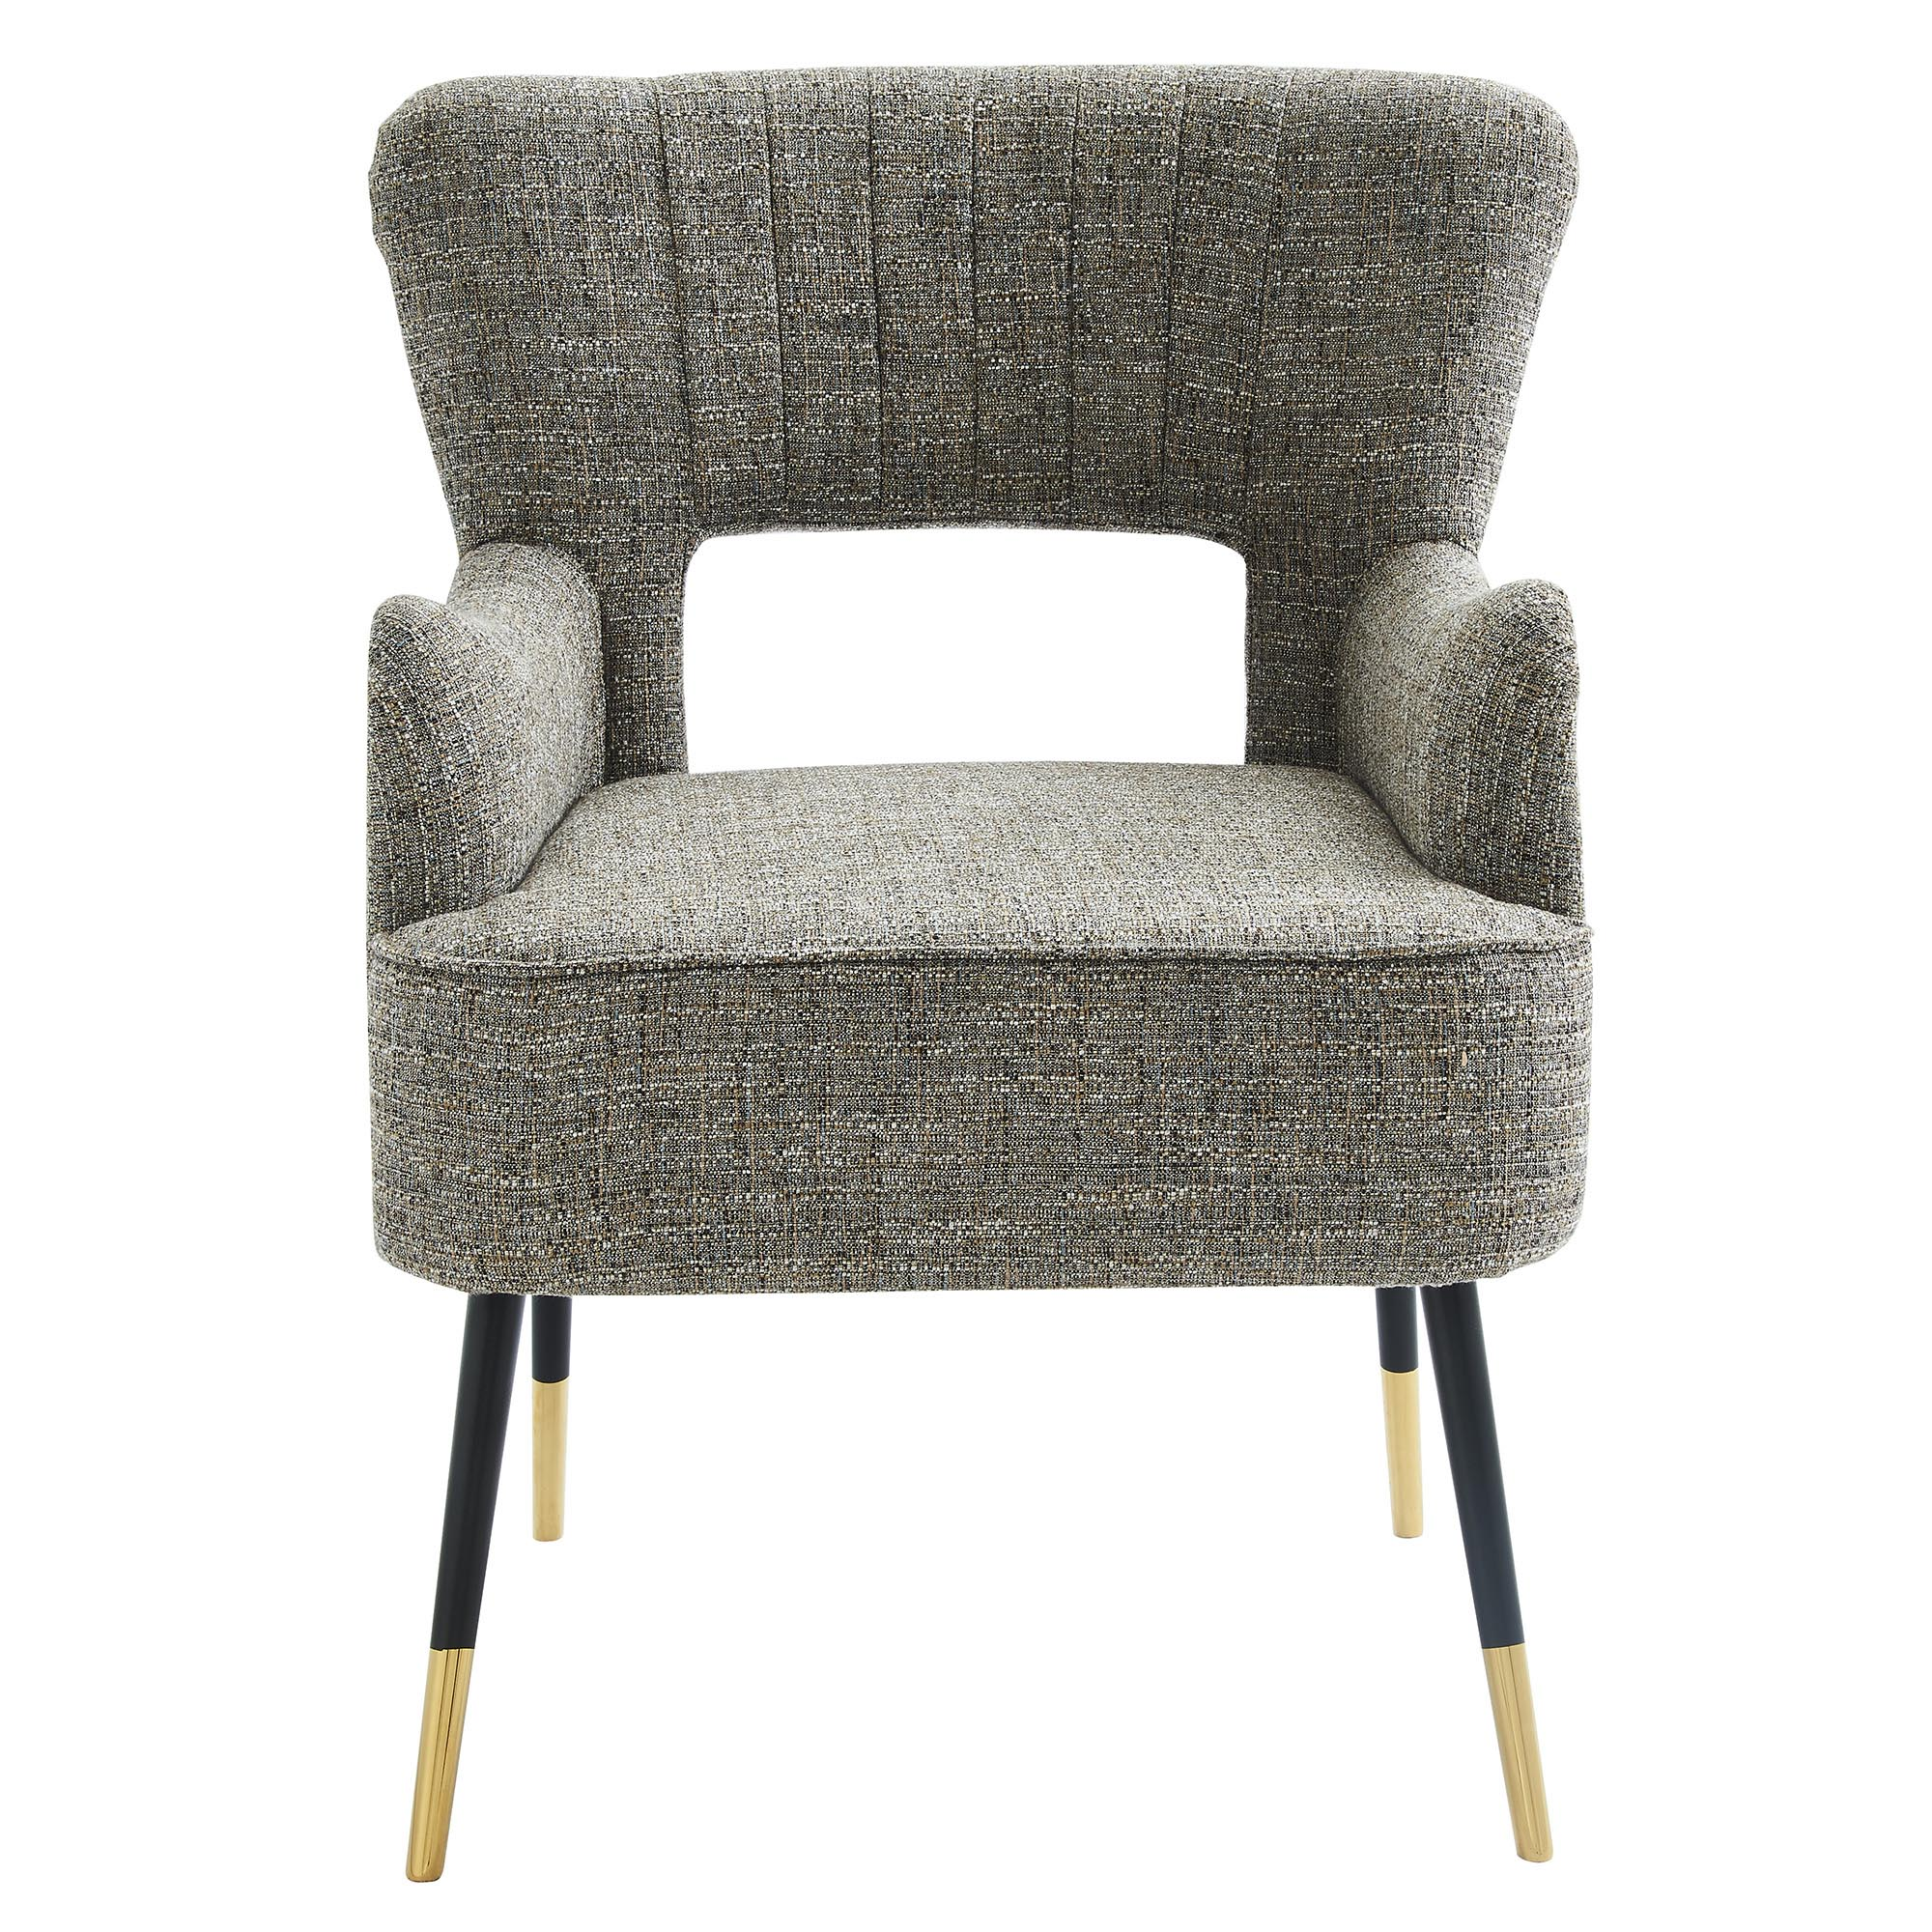 VINCE-ACCENT CHAIR-CAMEL BLEND, 841173032050, Accent Chairs by Midha Furniture to Brampton, Mississauga, Etobicoke, Toronto, Scraborough, Caledon, Oakville, Markham, Ajax, Pickering, Oshawa, Richmondhill, Kitchener, Hamilton and GTA area